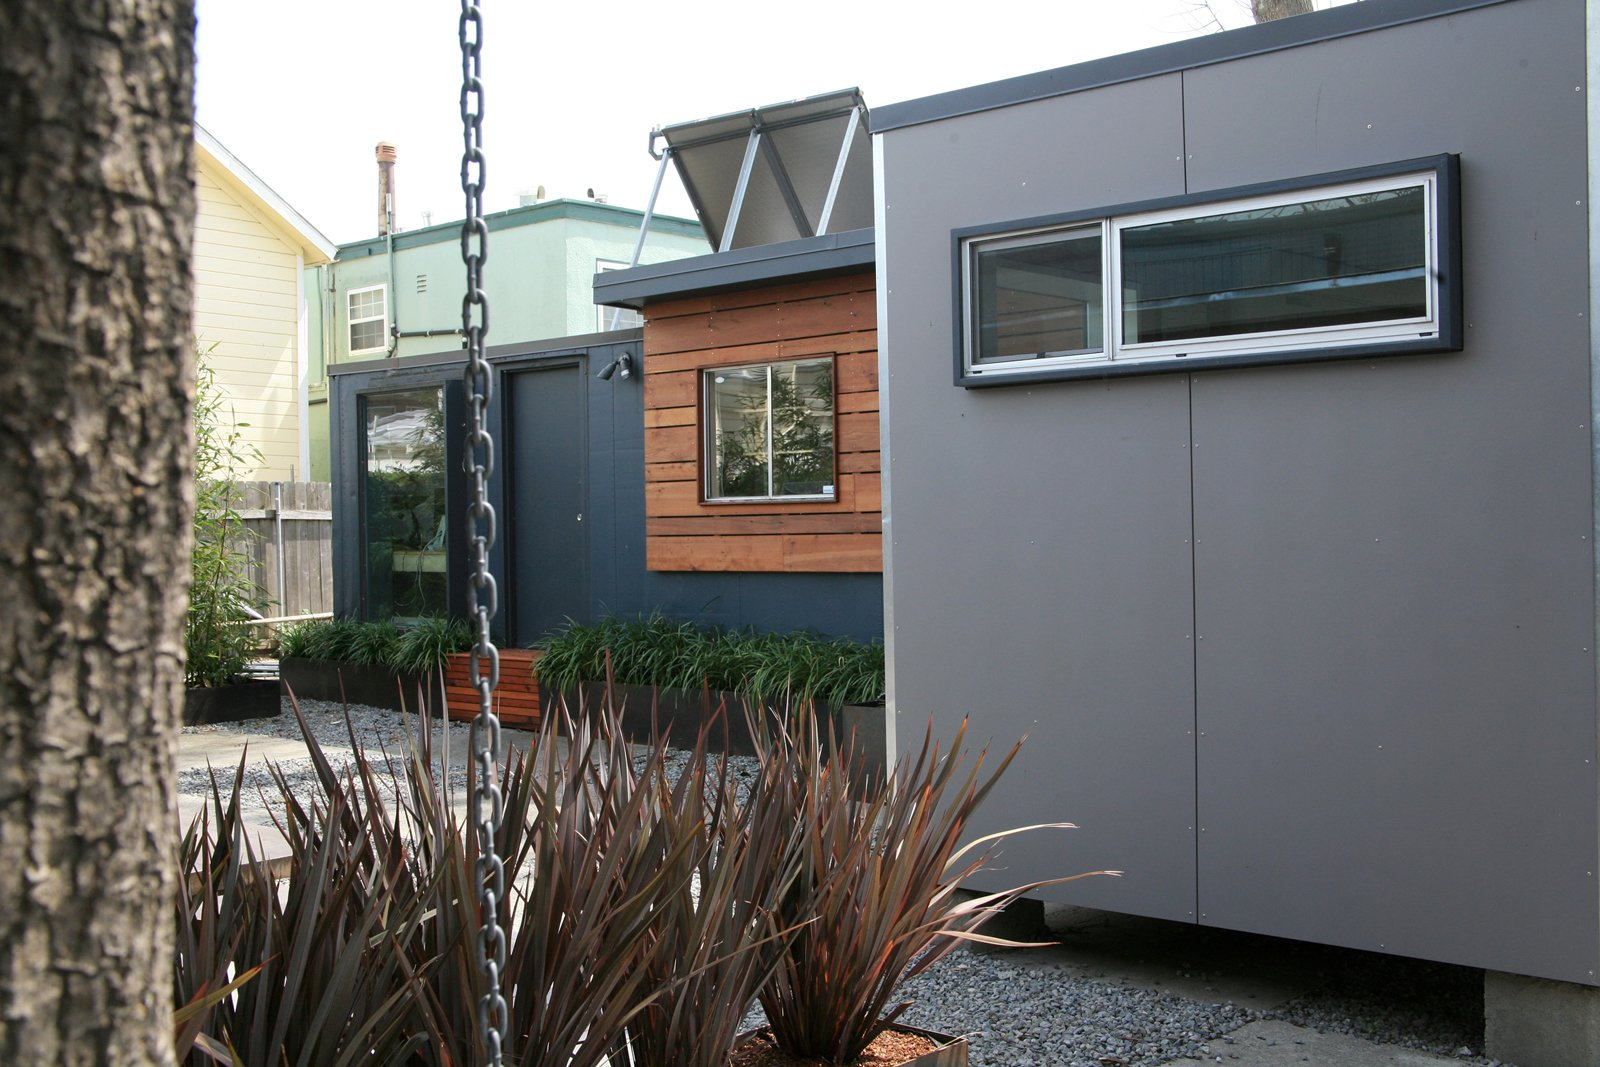 """""""We're trying to create a sense of enclosure and privacy in an urban area without putting up a walled city,"""" says Shoup. Photo by building Lab inc."""